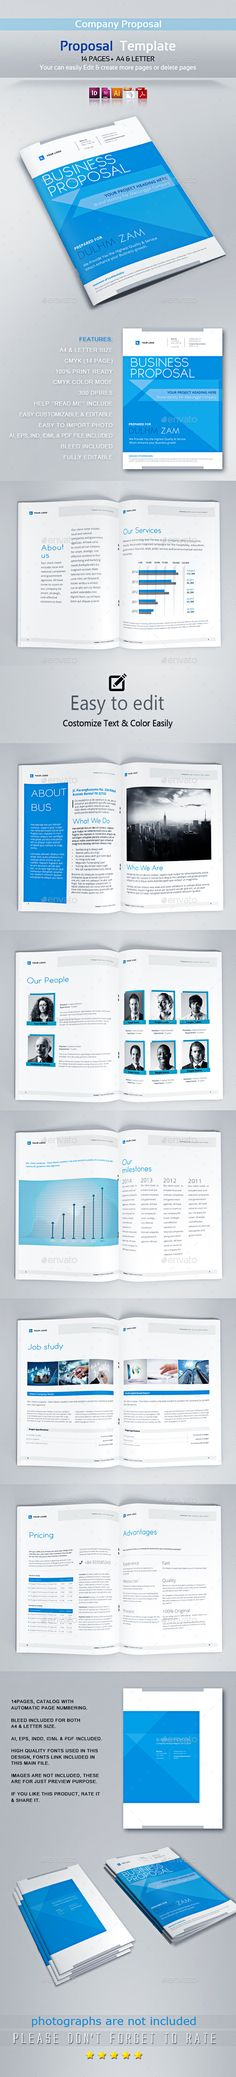 Proposal Template Proposal templates, Proposals and Adobe - purchase proposal templates